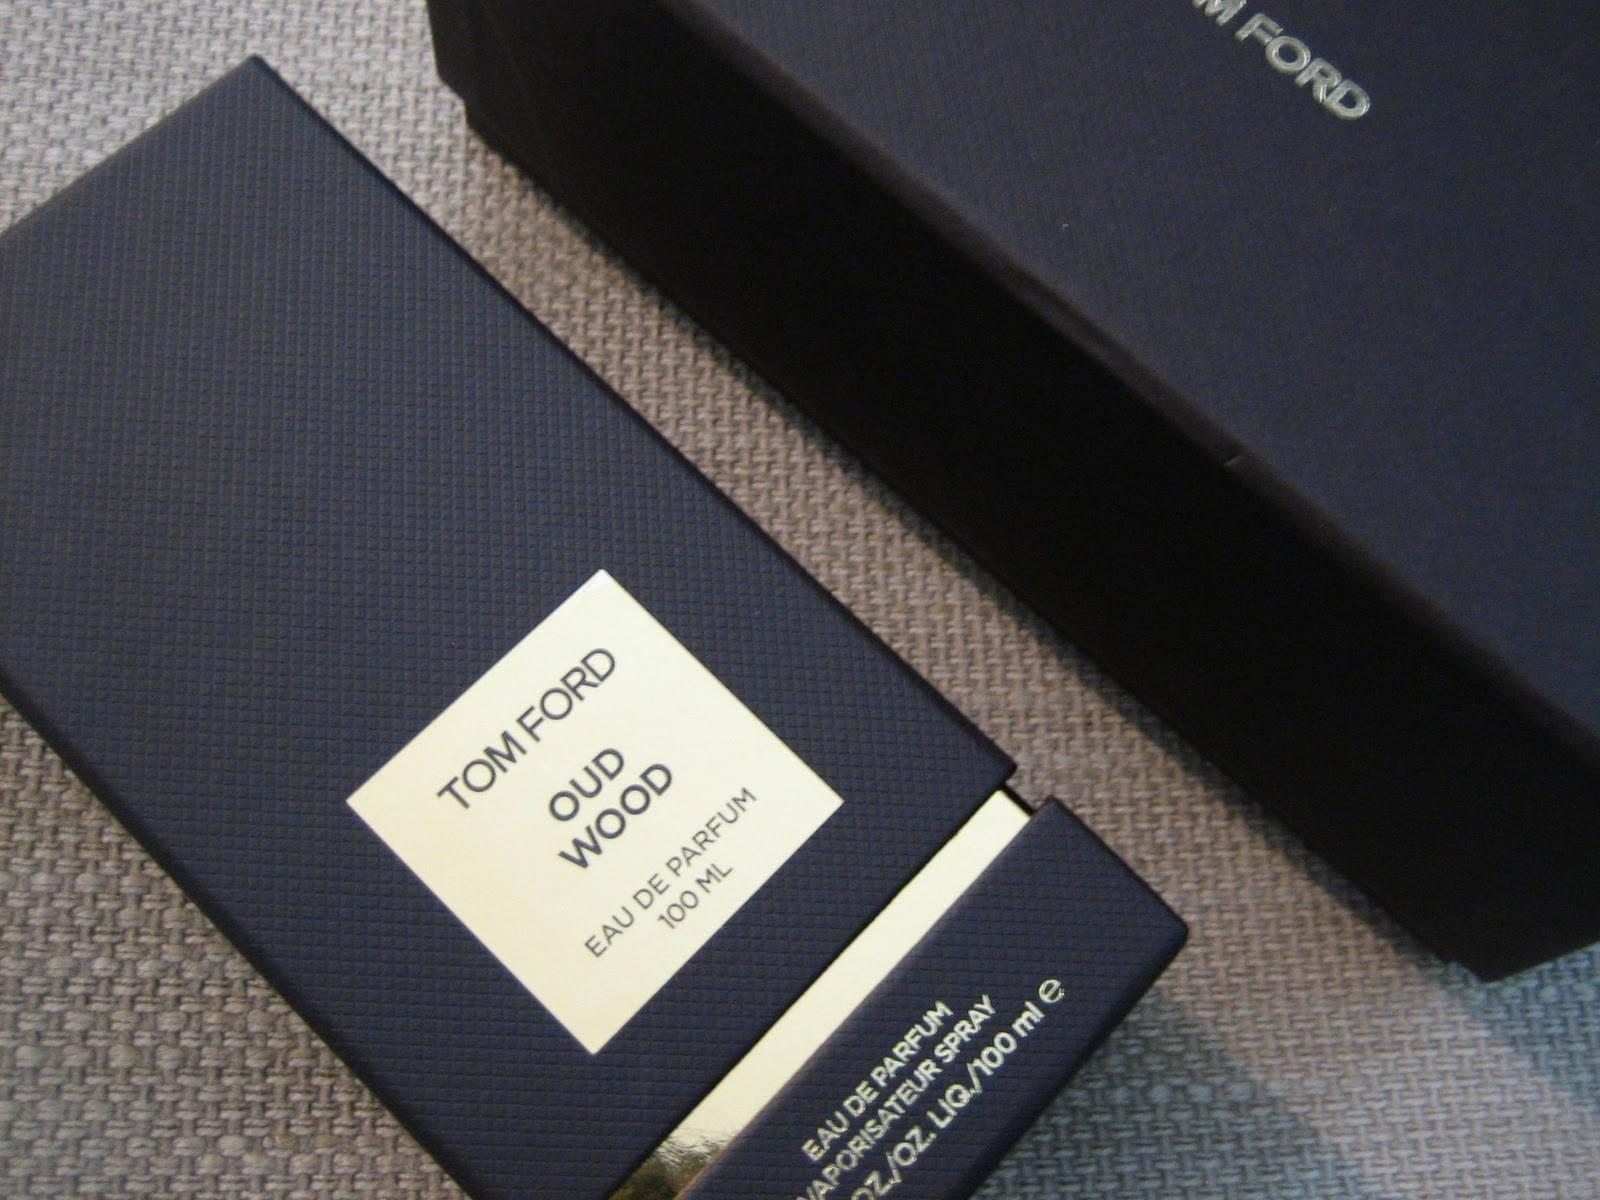 Tom Ford Oud Wood 50ml 2007 – Nam và Nữ